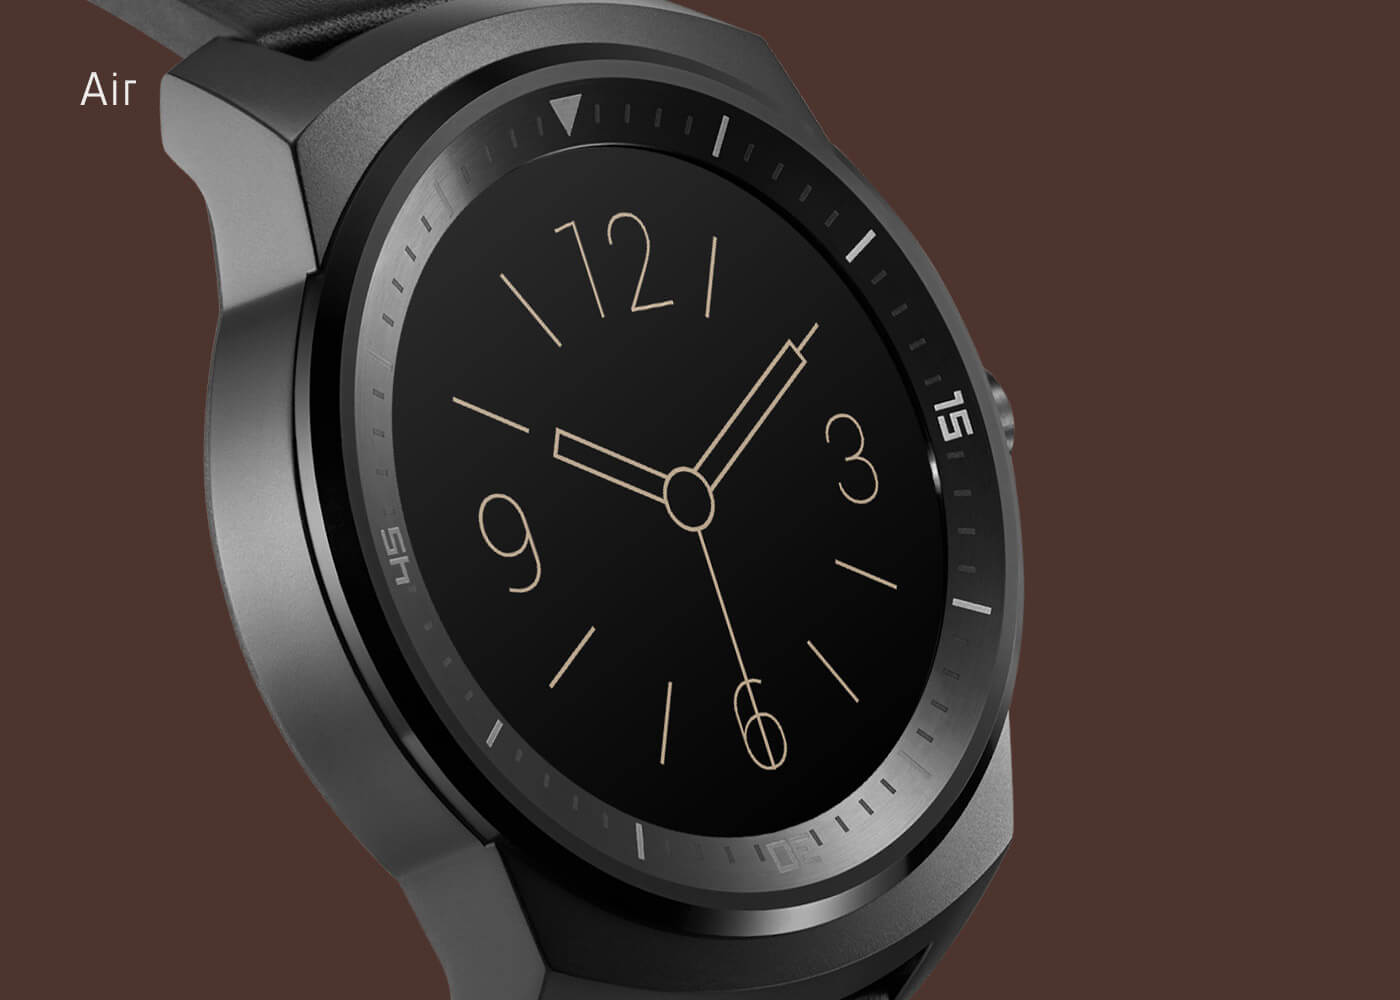 ustwo_watch_face_air